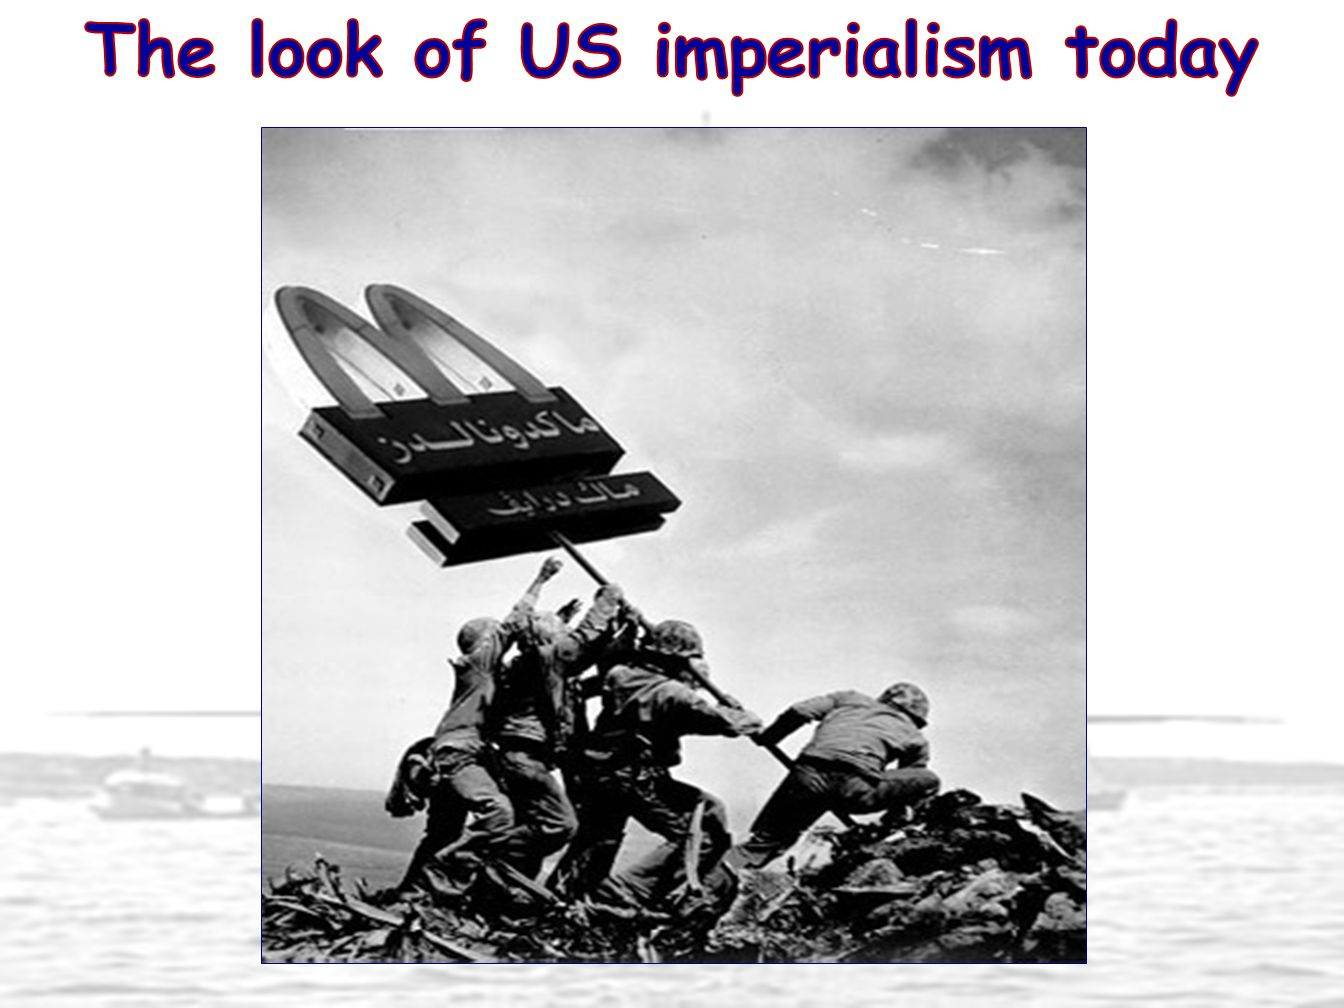 The look of US imperialism today